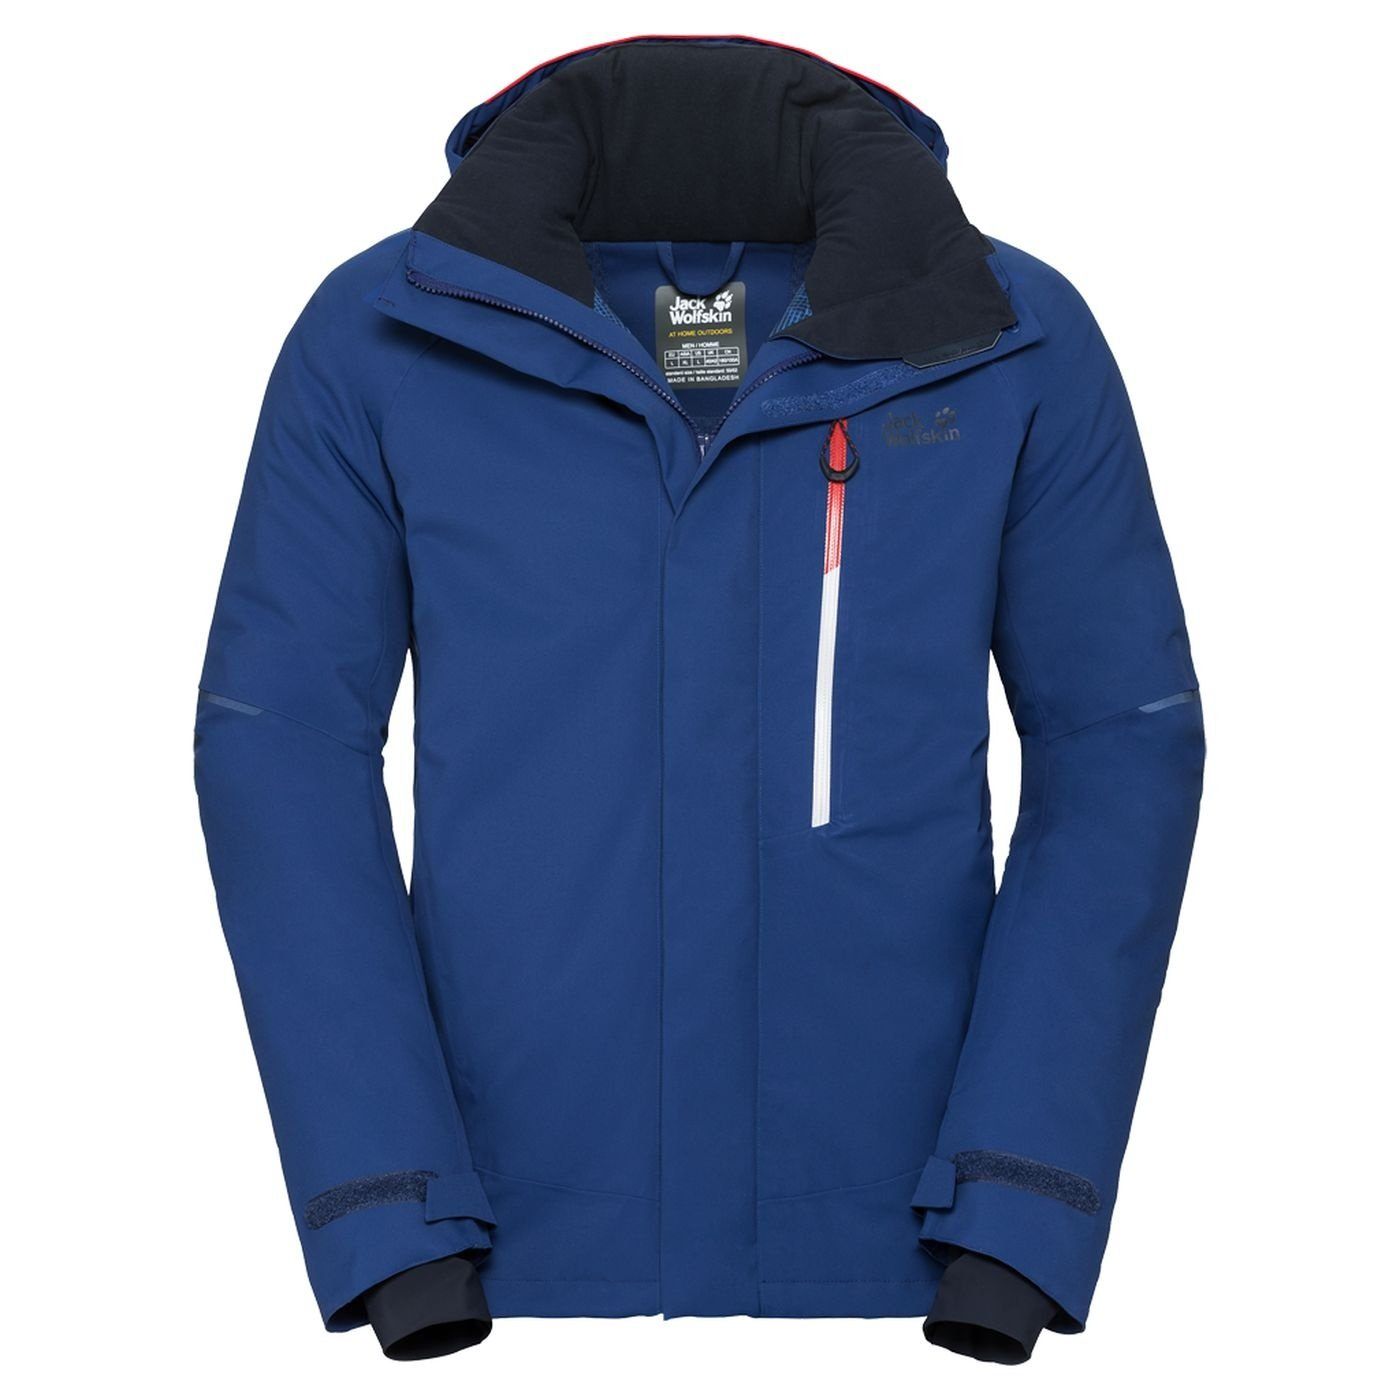 Jack Wolfskin Exolight ICY Winter Jacket Men's Jacket Blue